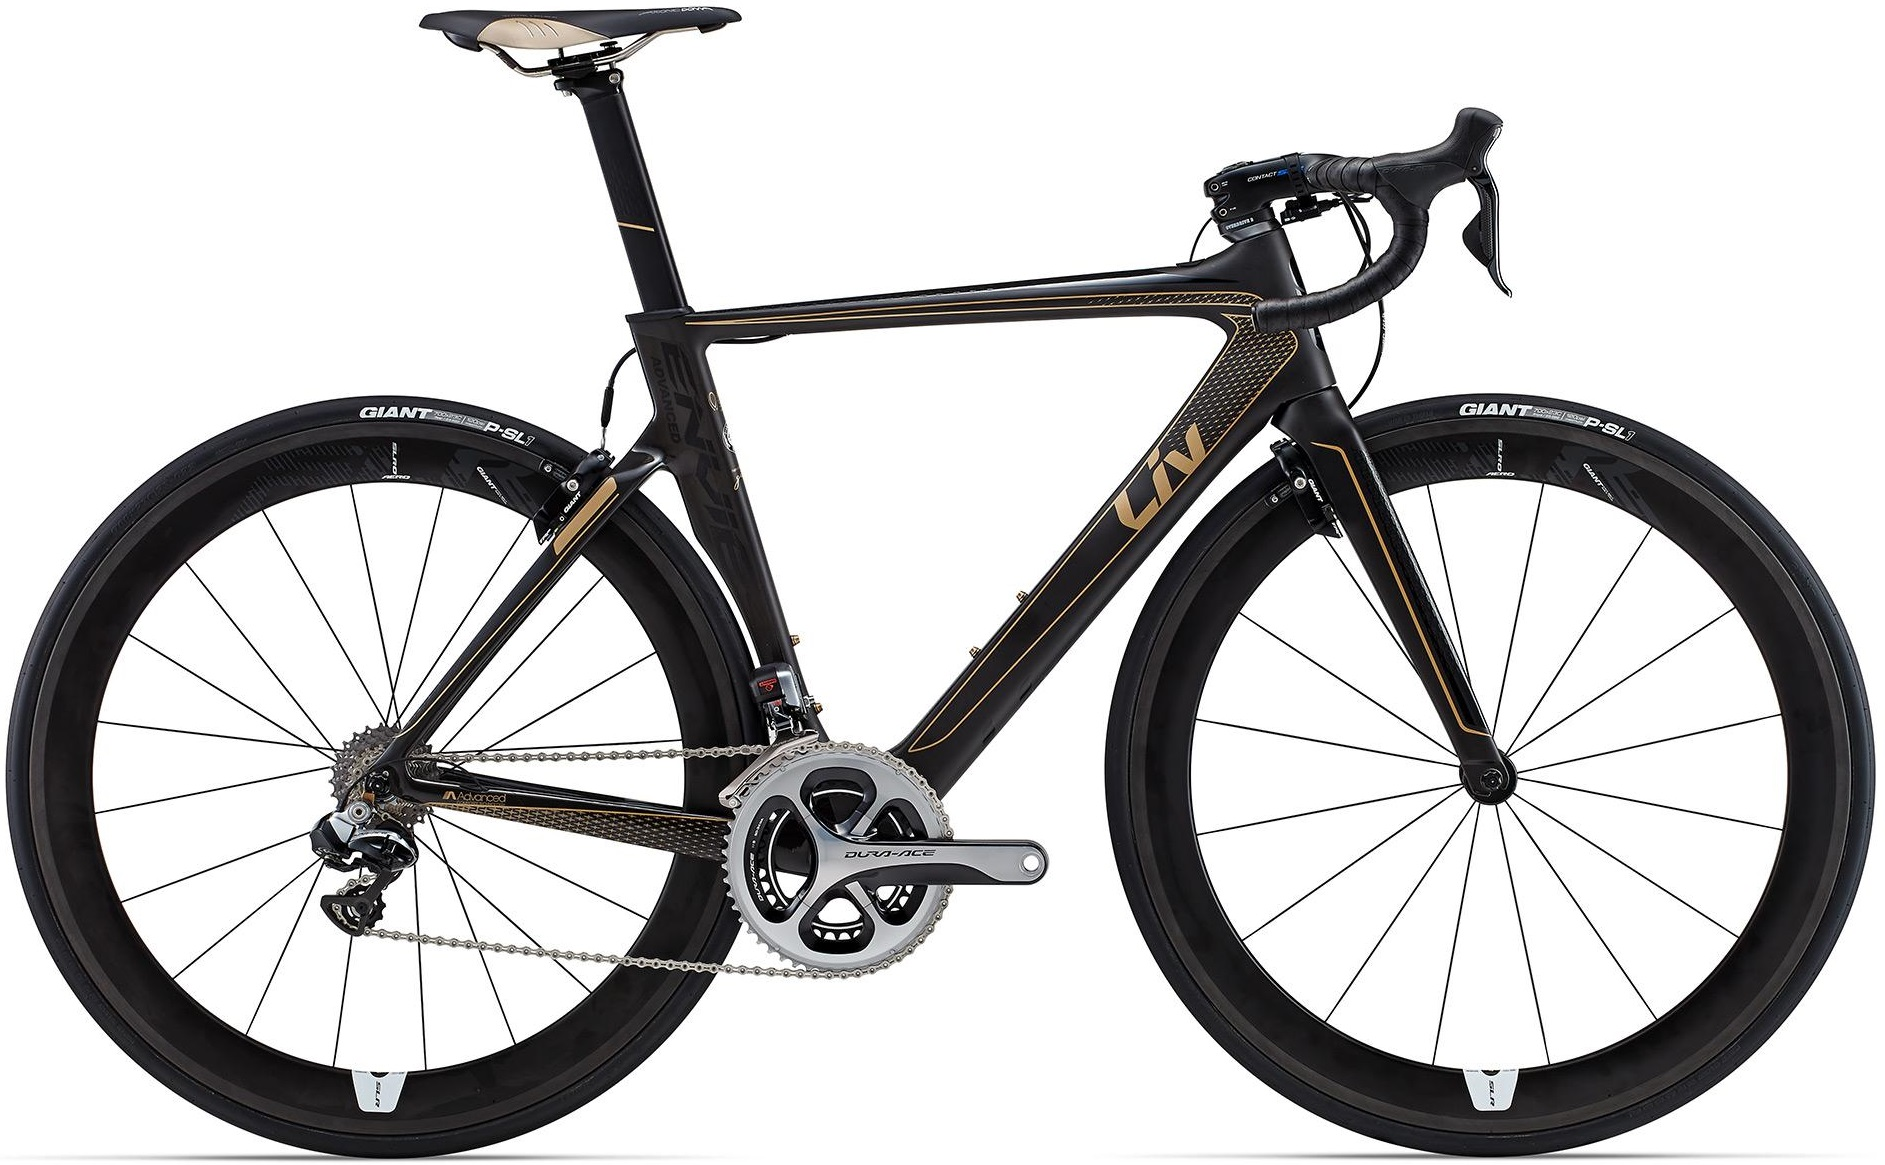 Envie-Advanced-Pro 2015 black gold GiantneuroticarnutzEnvie-Advanced-Pro 2015 black gold Giant2015 Canyon Aeroad CF omega pharma